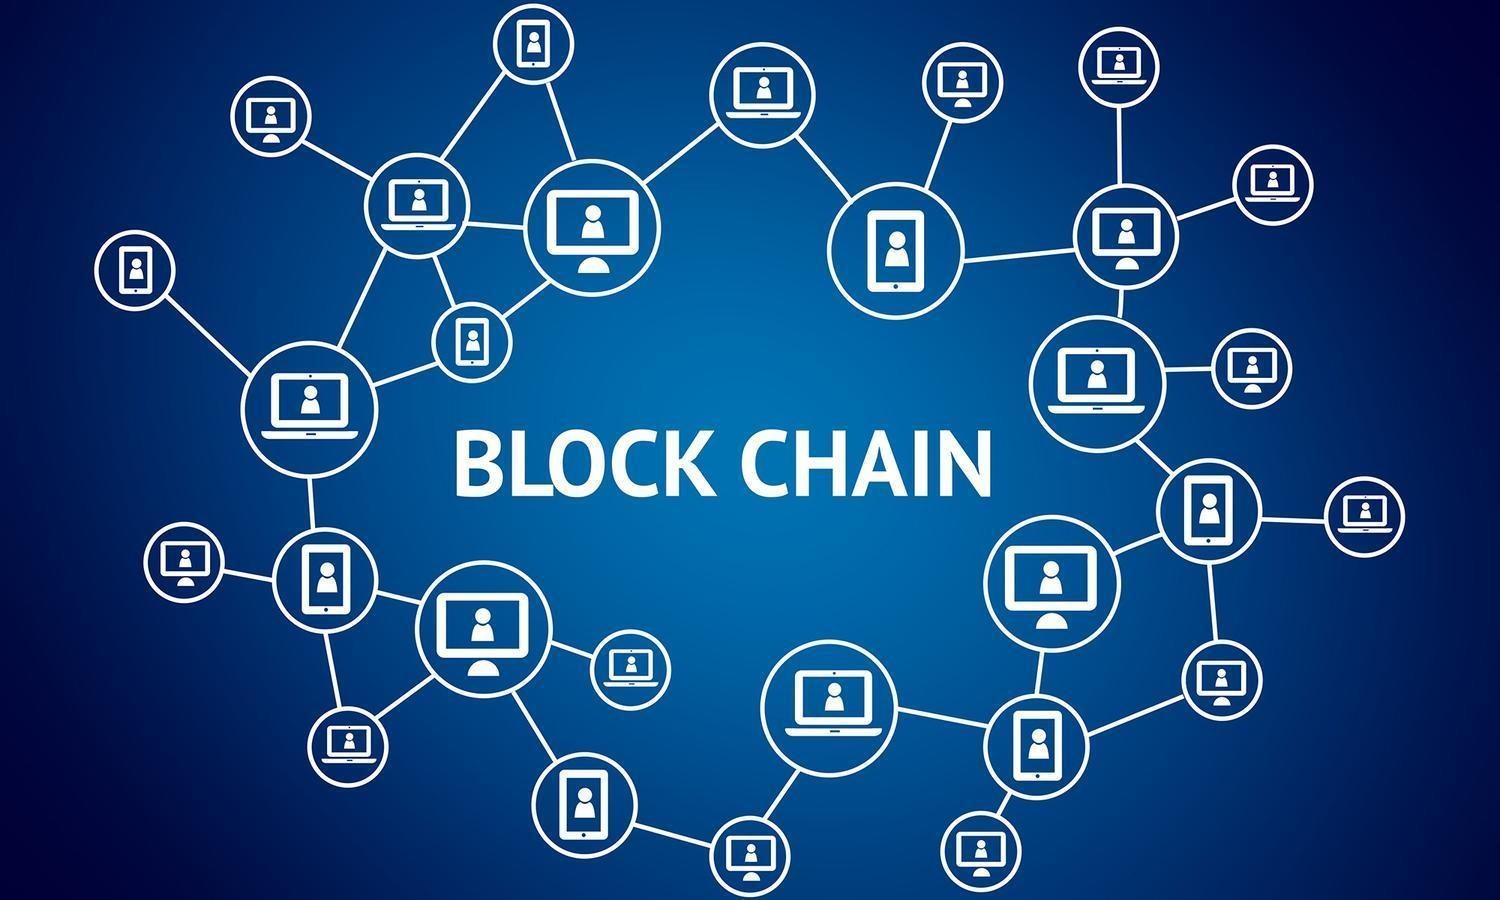 What industries will blockchain disrupt the most?